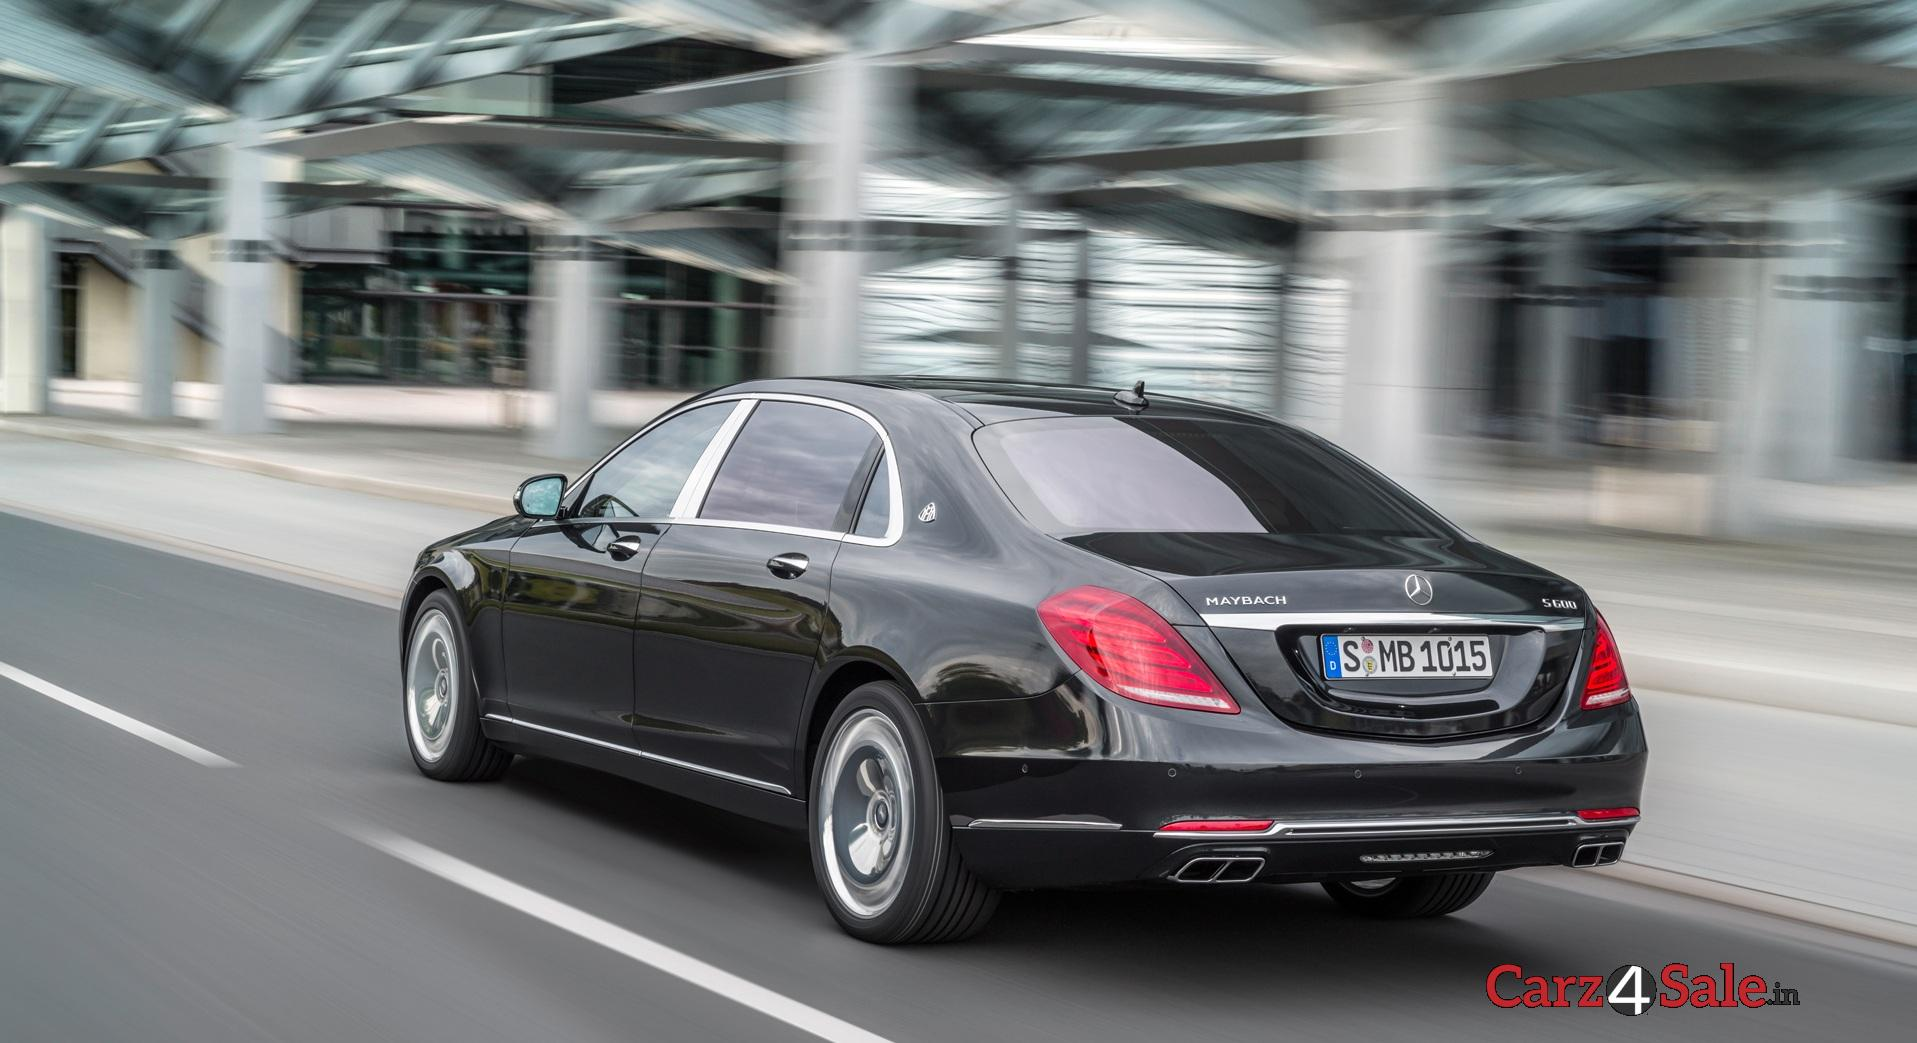 Mercedesmaybach S600 Rear